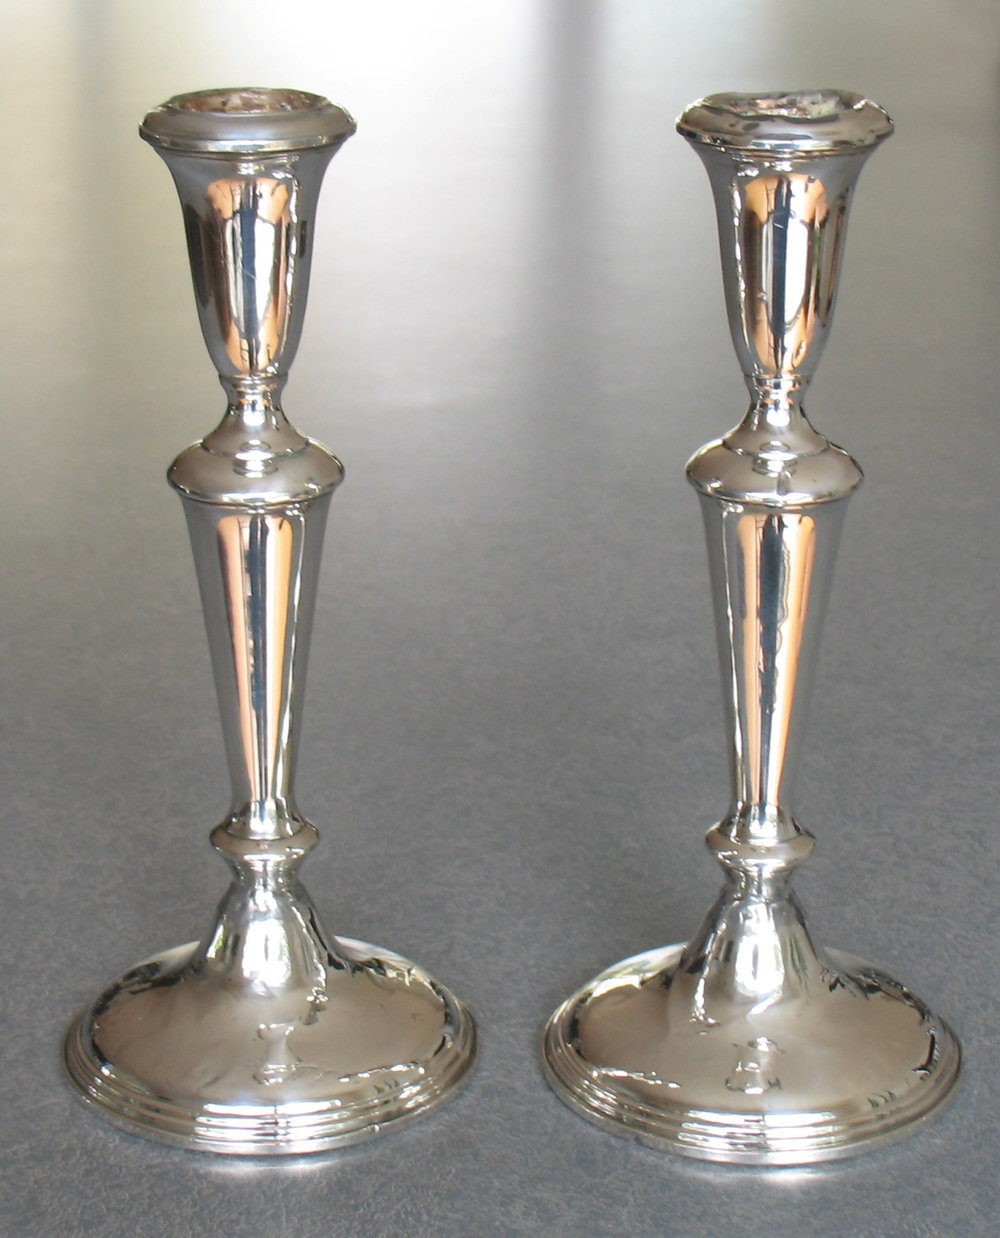 straightened silver candlesticks